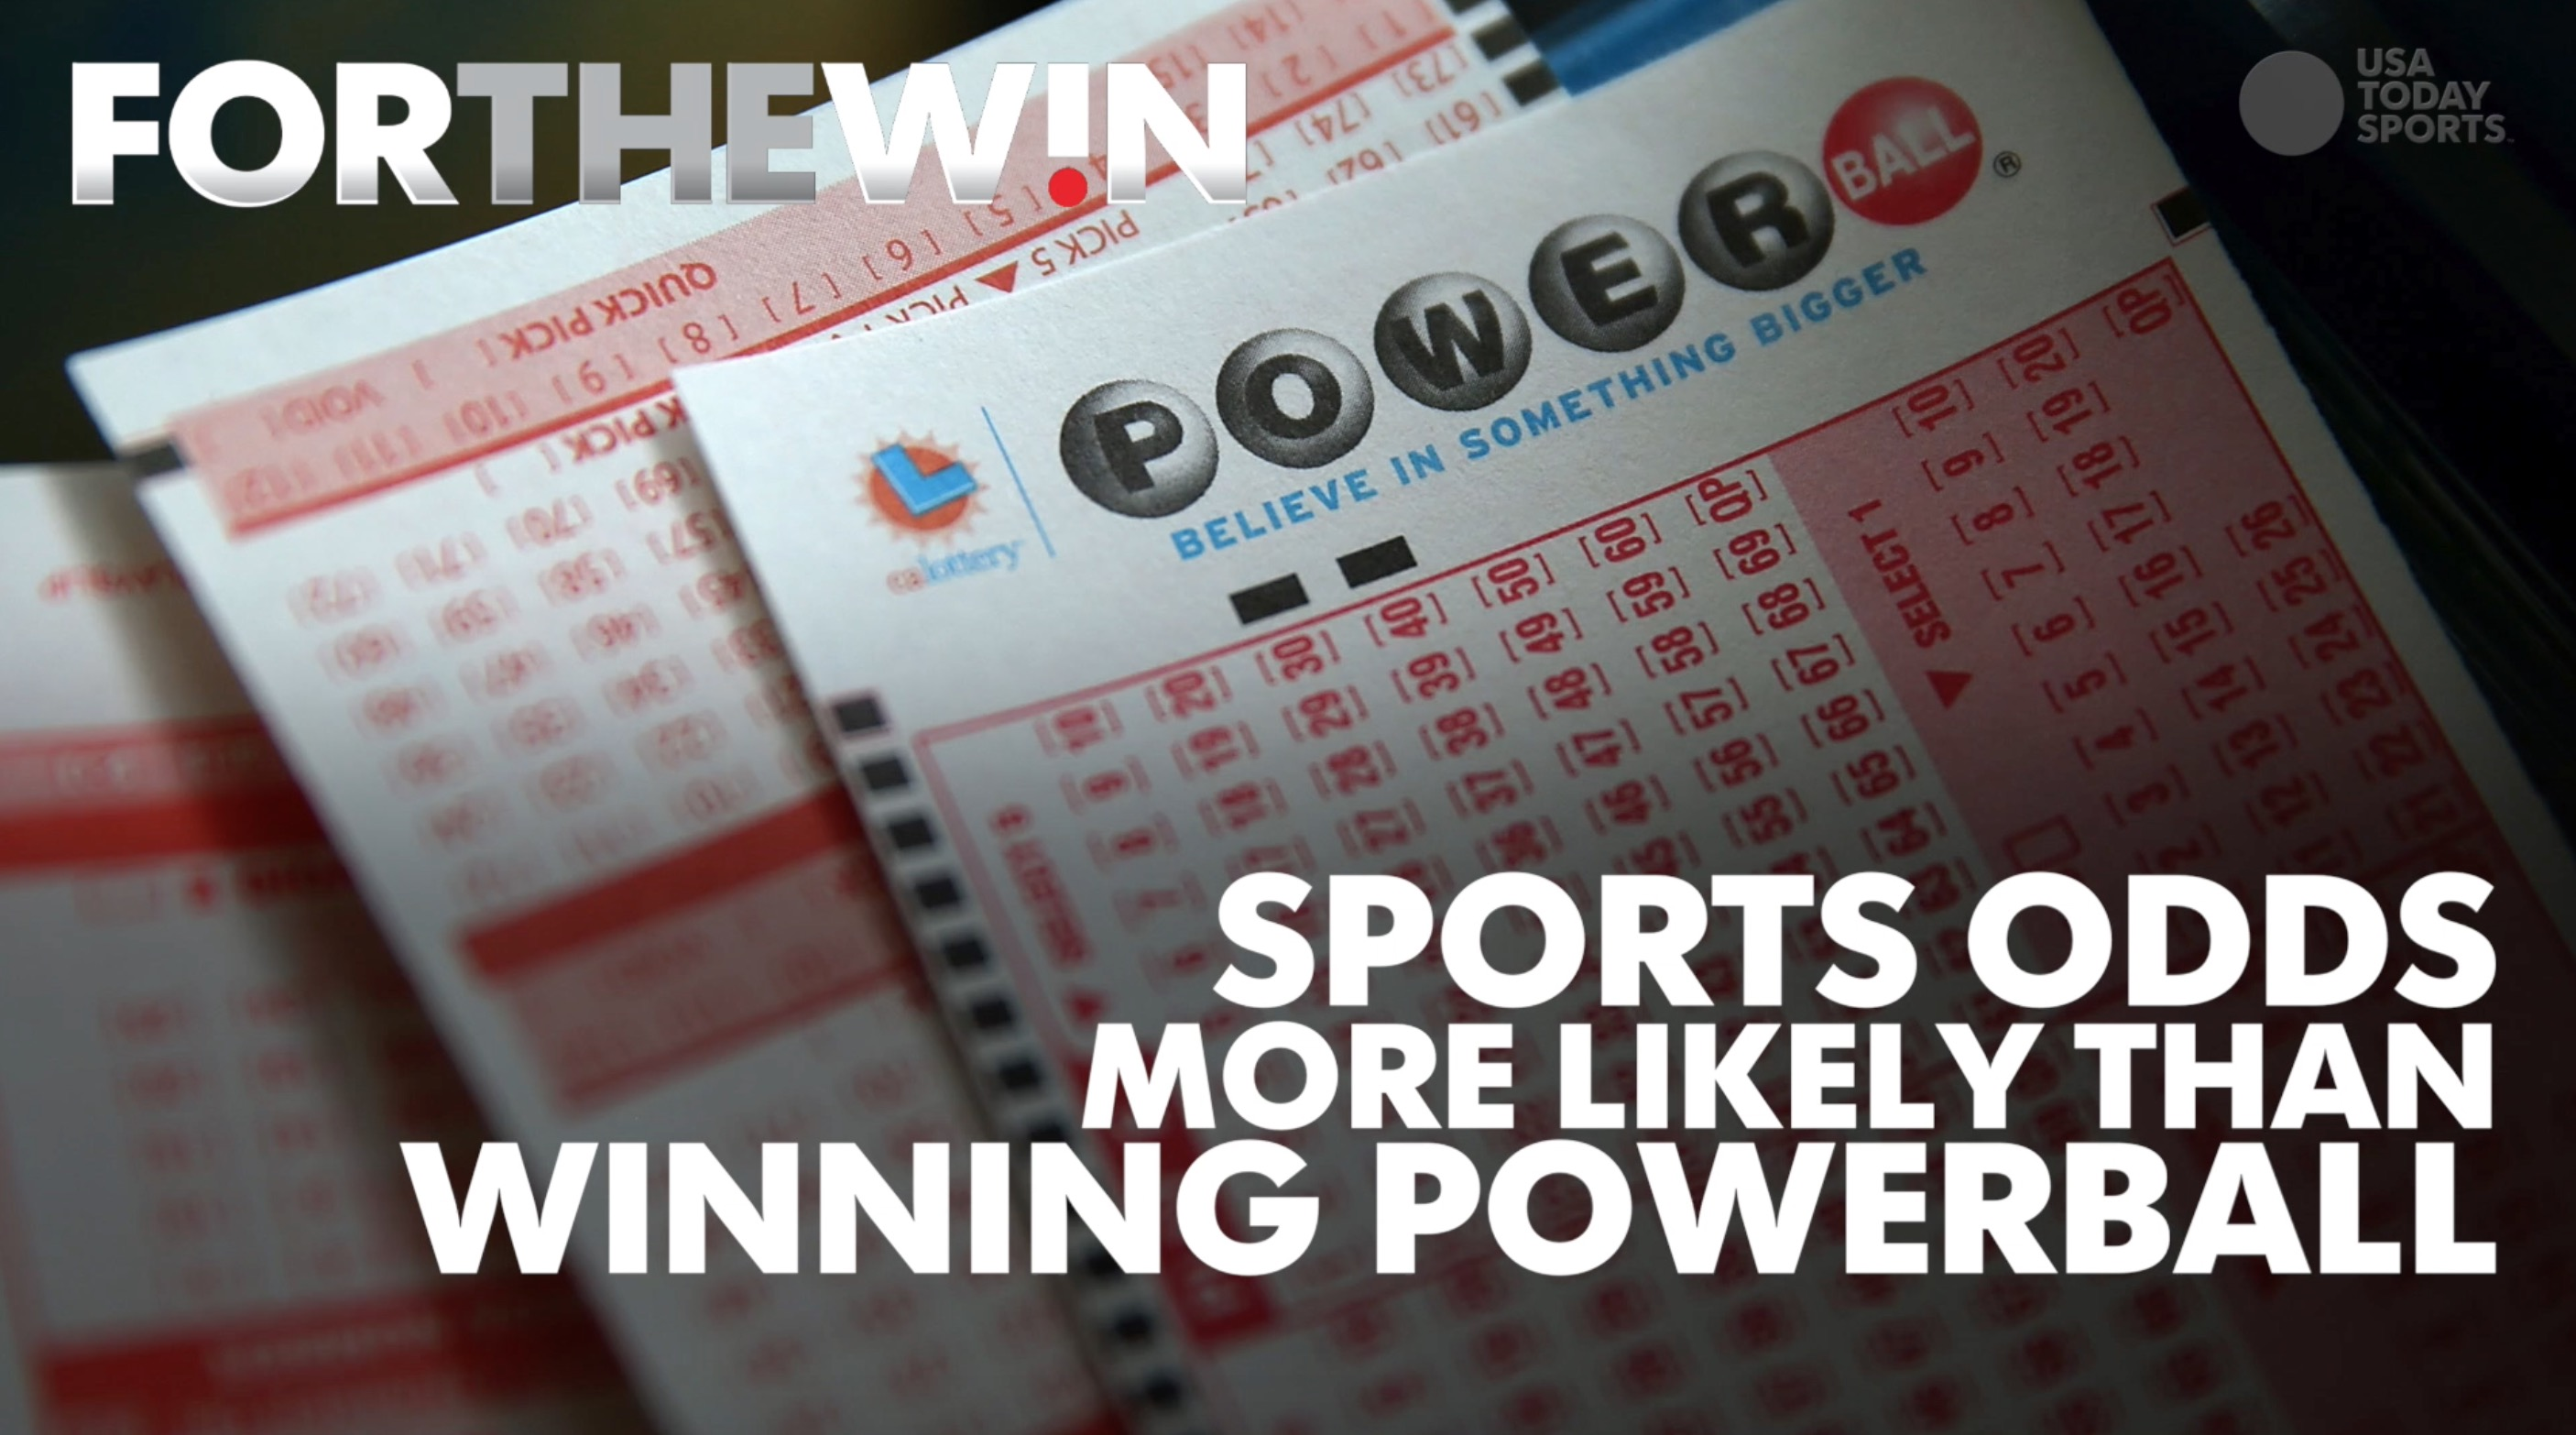 Sports odds more likely than winning Powerball